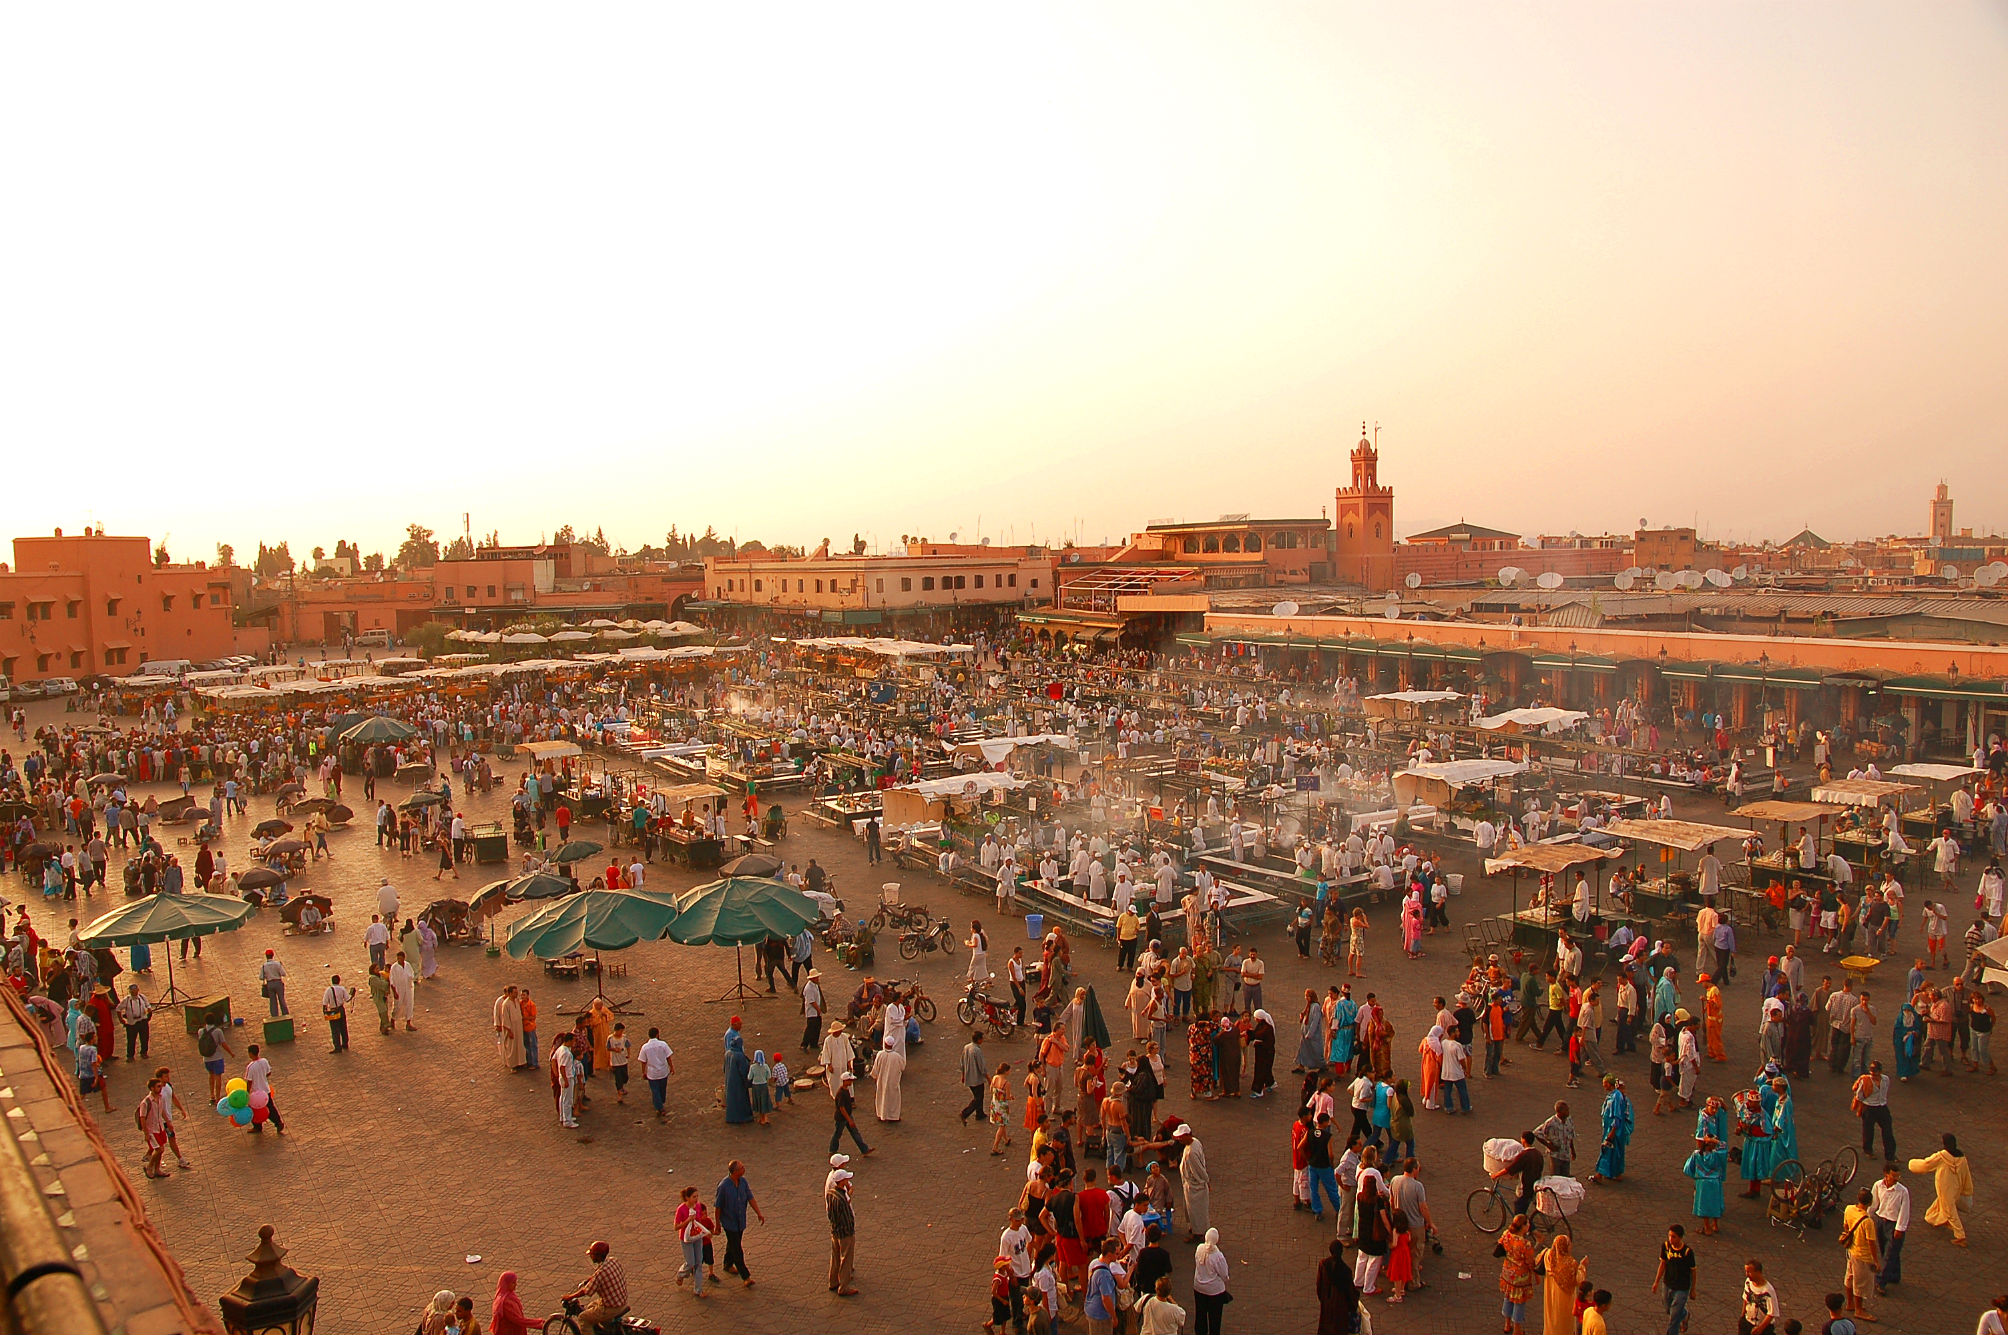 The Marrakesh experience (Image source: wikimedia.org